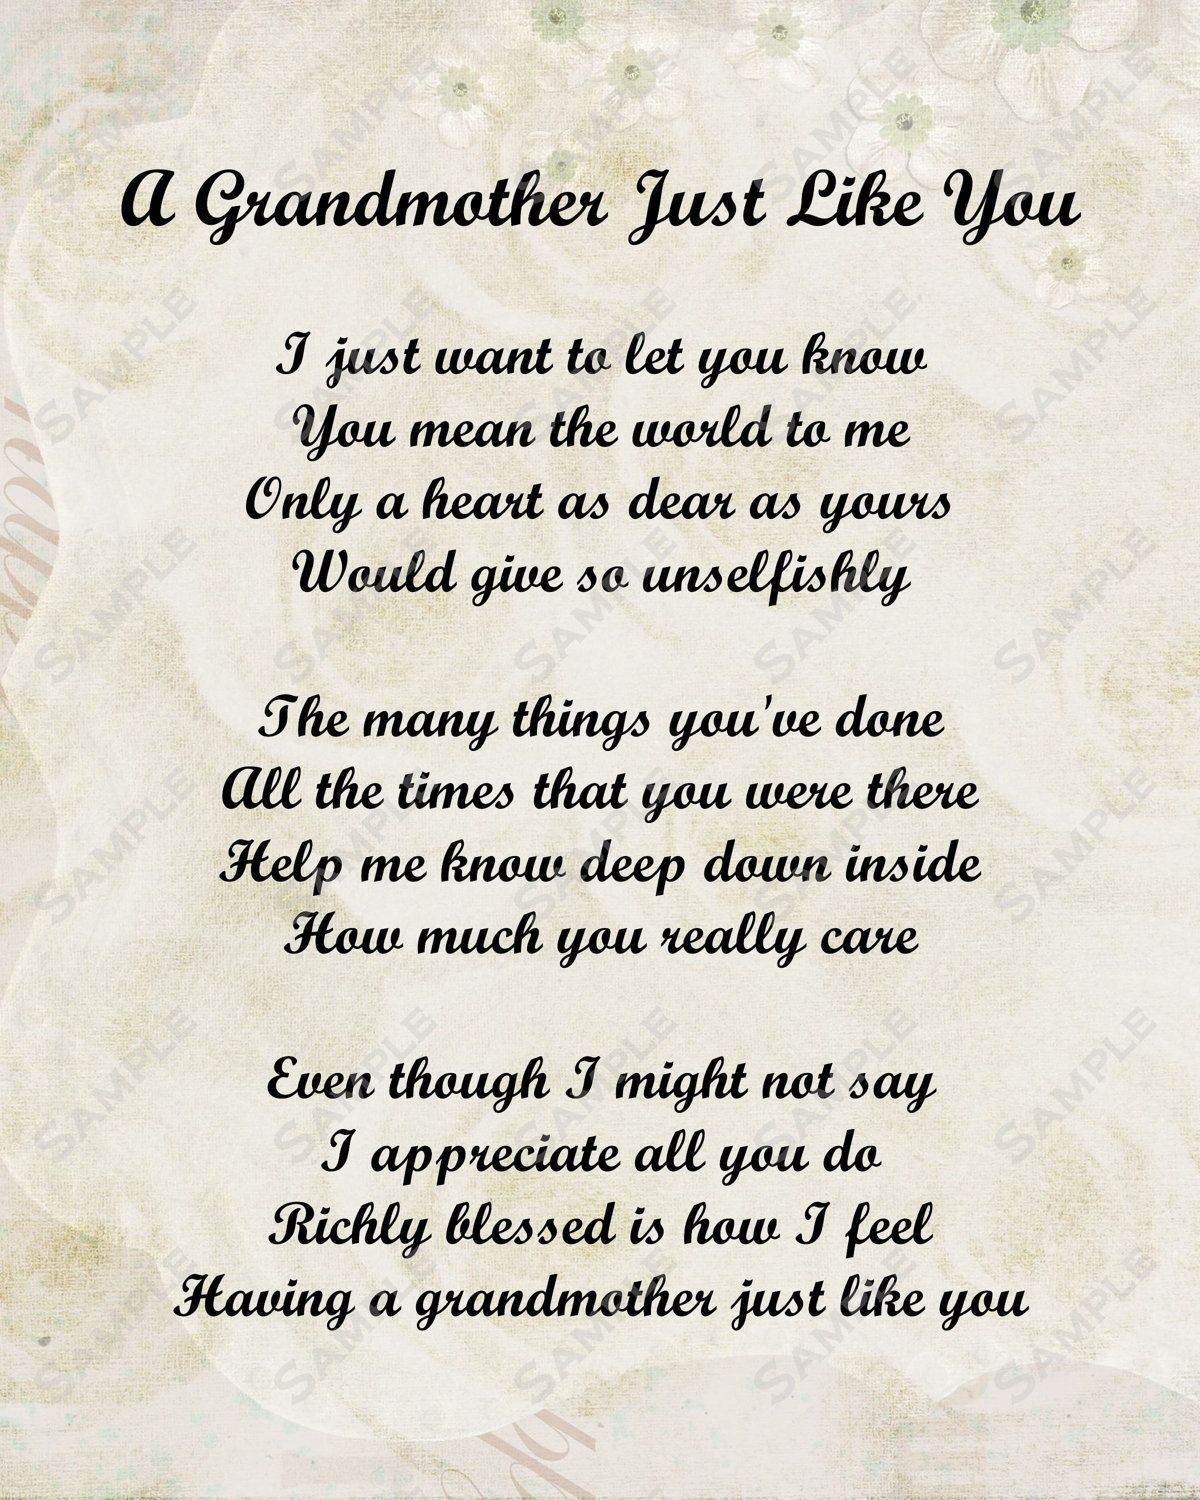 Grandmother Poem Love Poem Instant Download By Queenofheart Ts 8 99